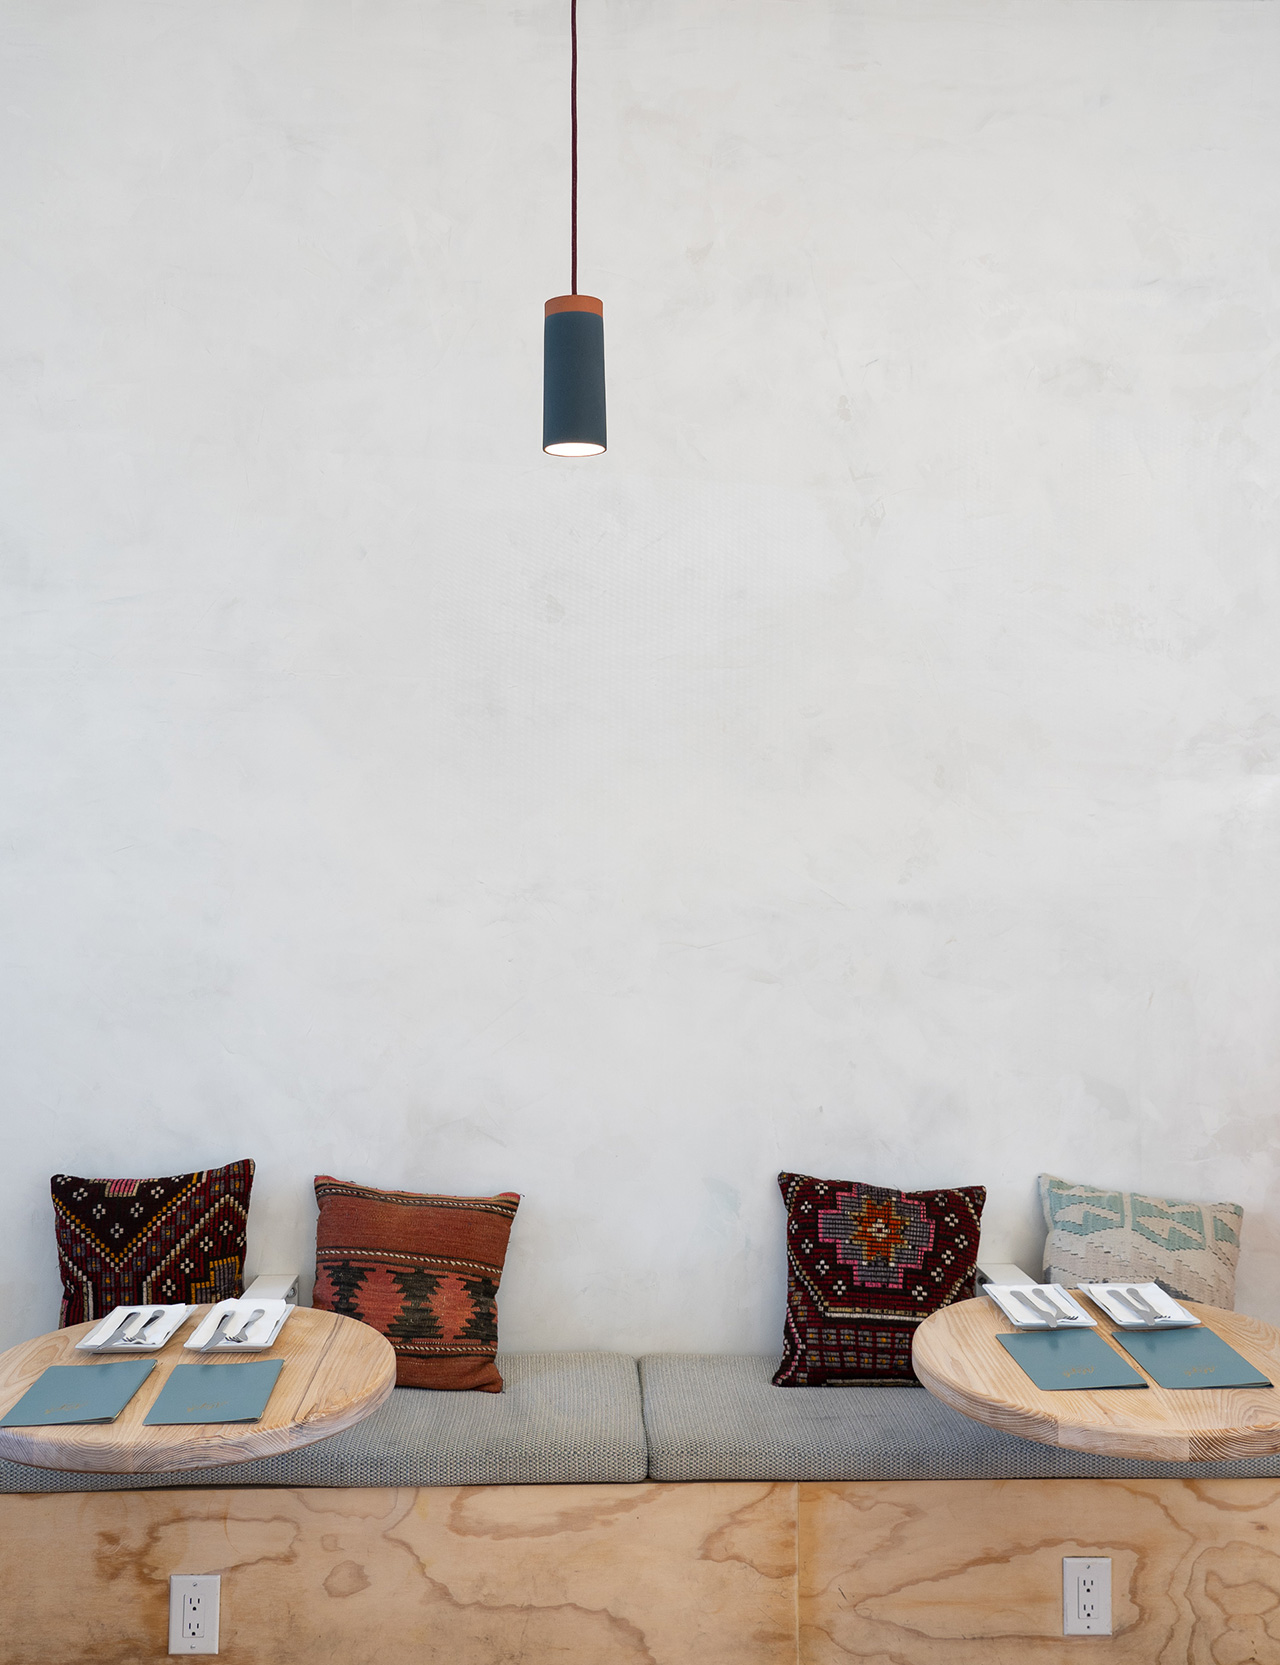 Cozy, side-by-side seating along the wall.